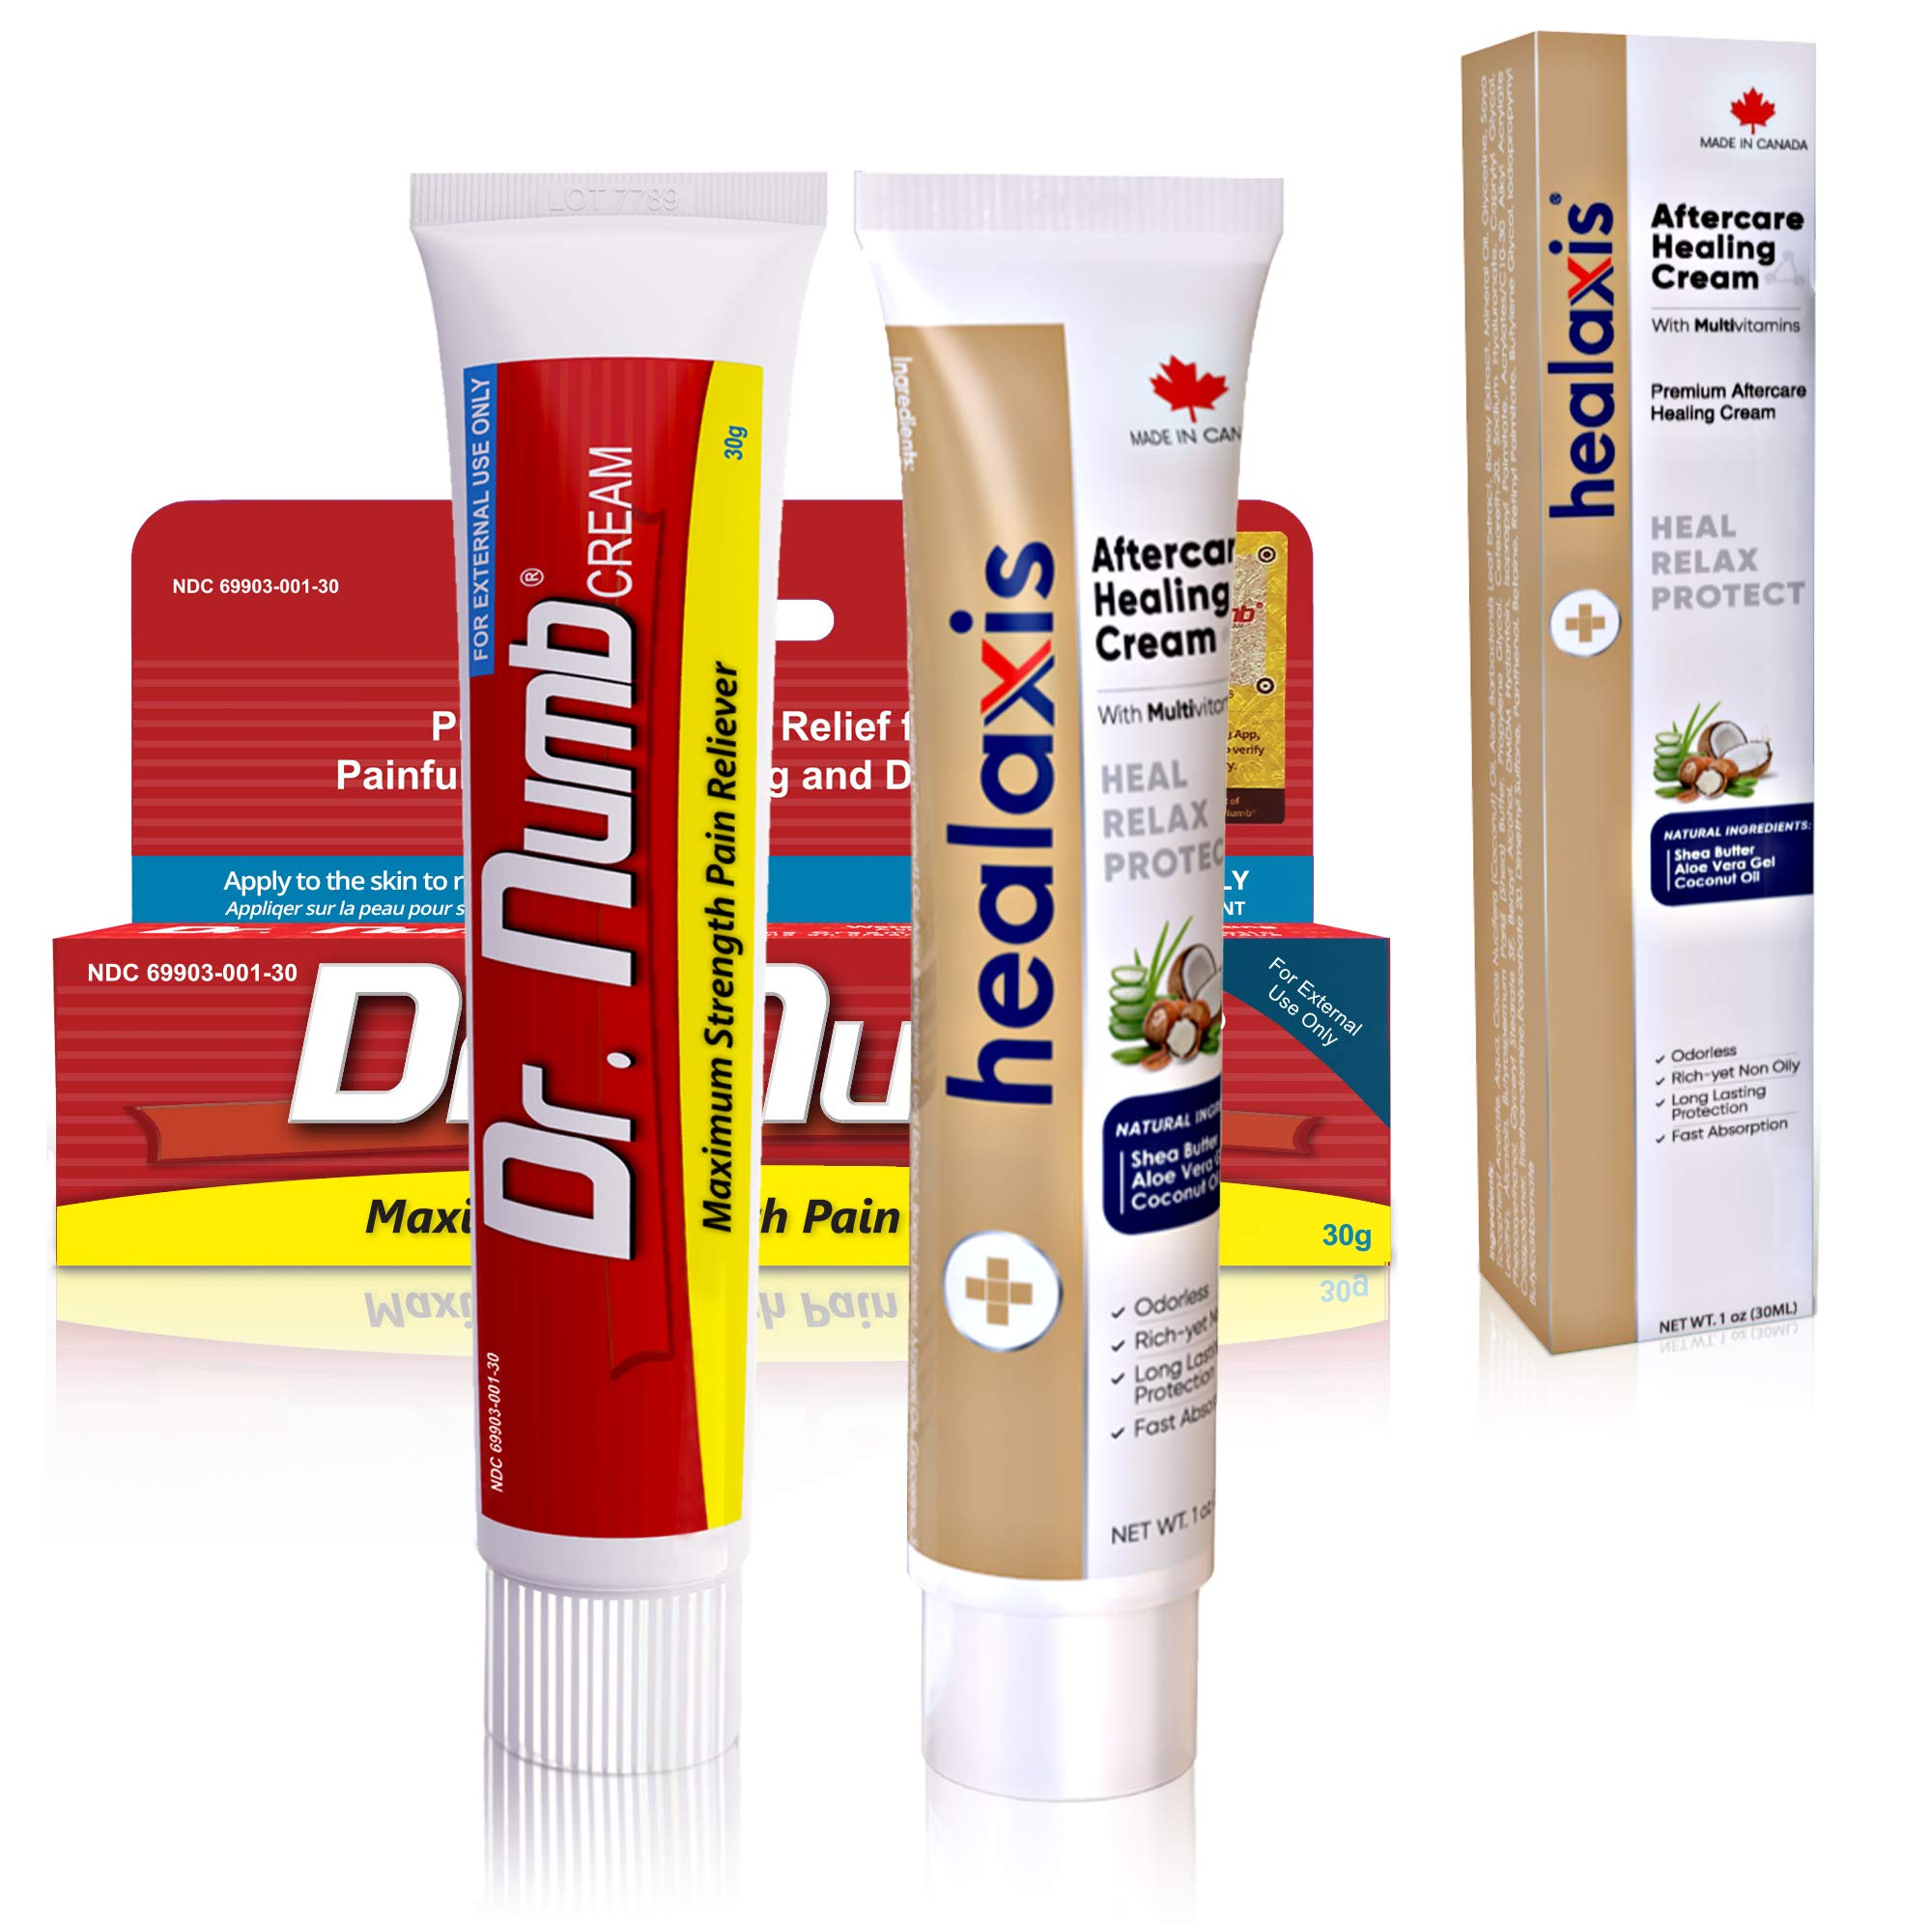 1 Tube of Healaxis Aftercare Healing Cream + 1 Tube of Dr. Numb 5% Numbing Cream (30g + 30g)